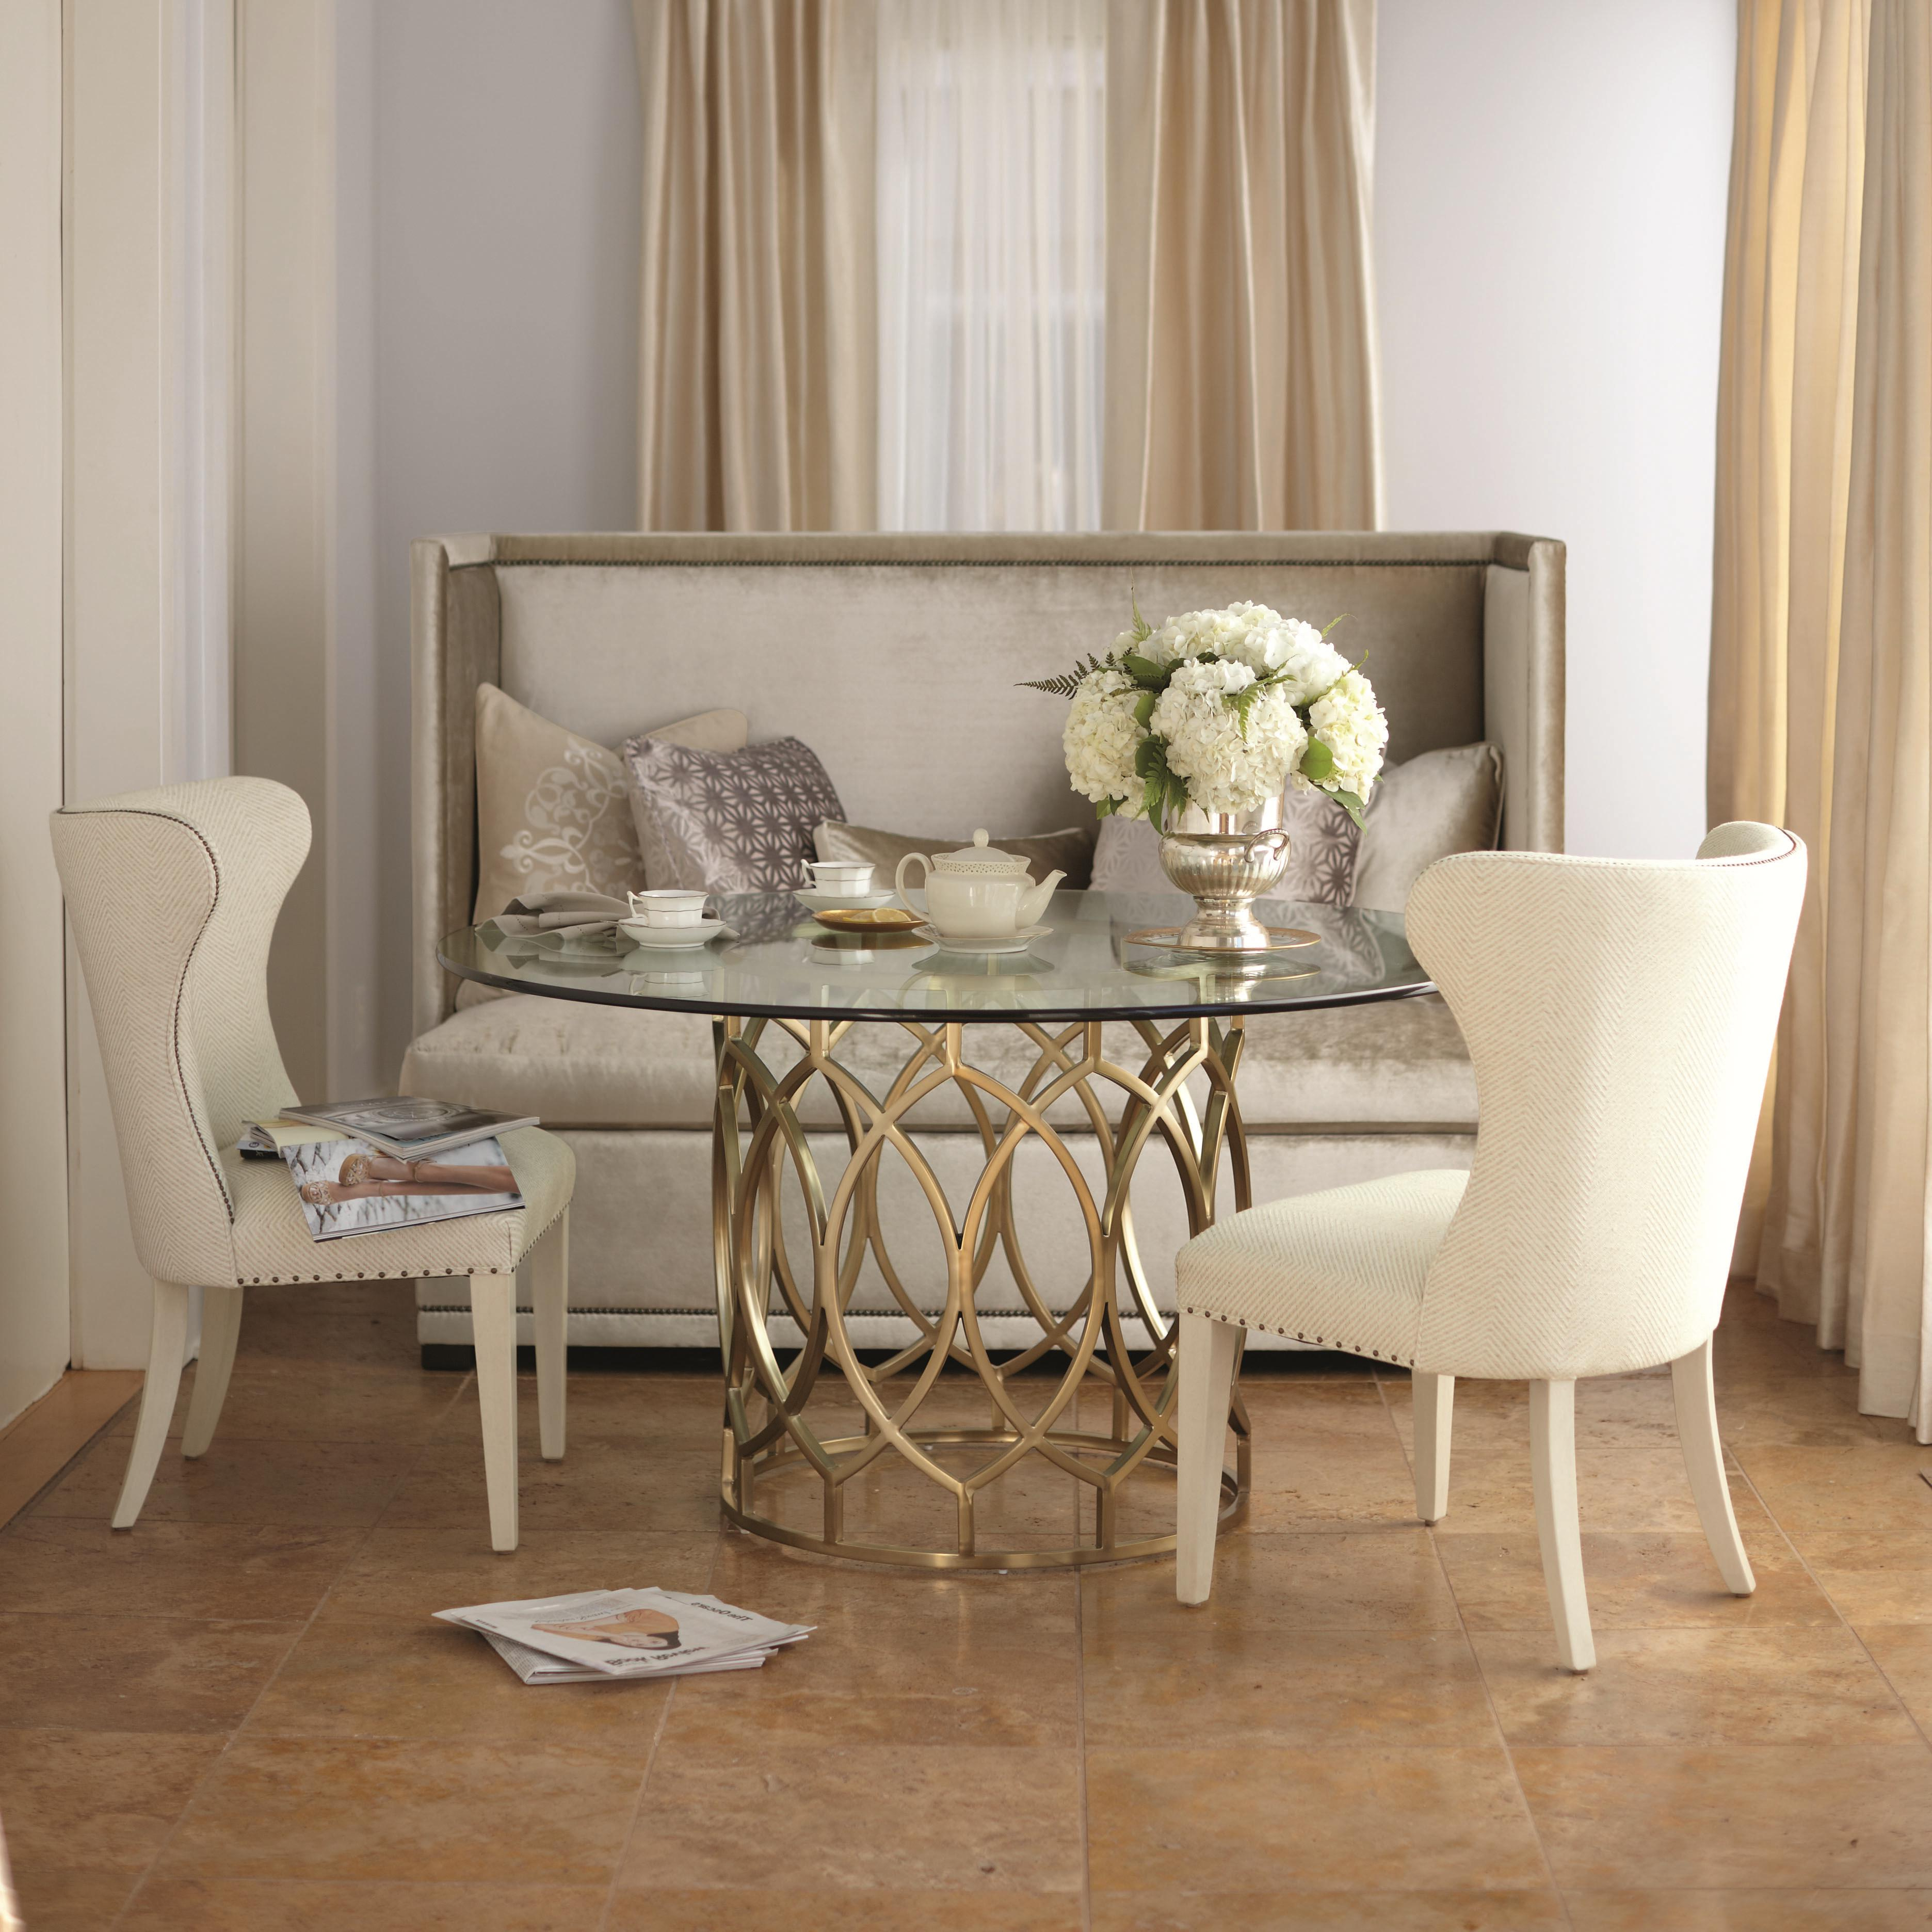 Newest 3 Piece Dining Sets With Salon 3 Piece Dining Set With Round Glass Top Tablebernhardt At Dunk &  Bright Furniture (View 15 of 20)